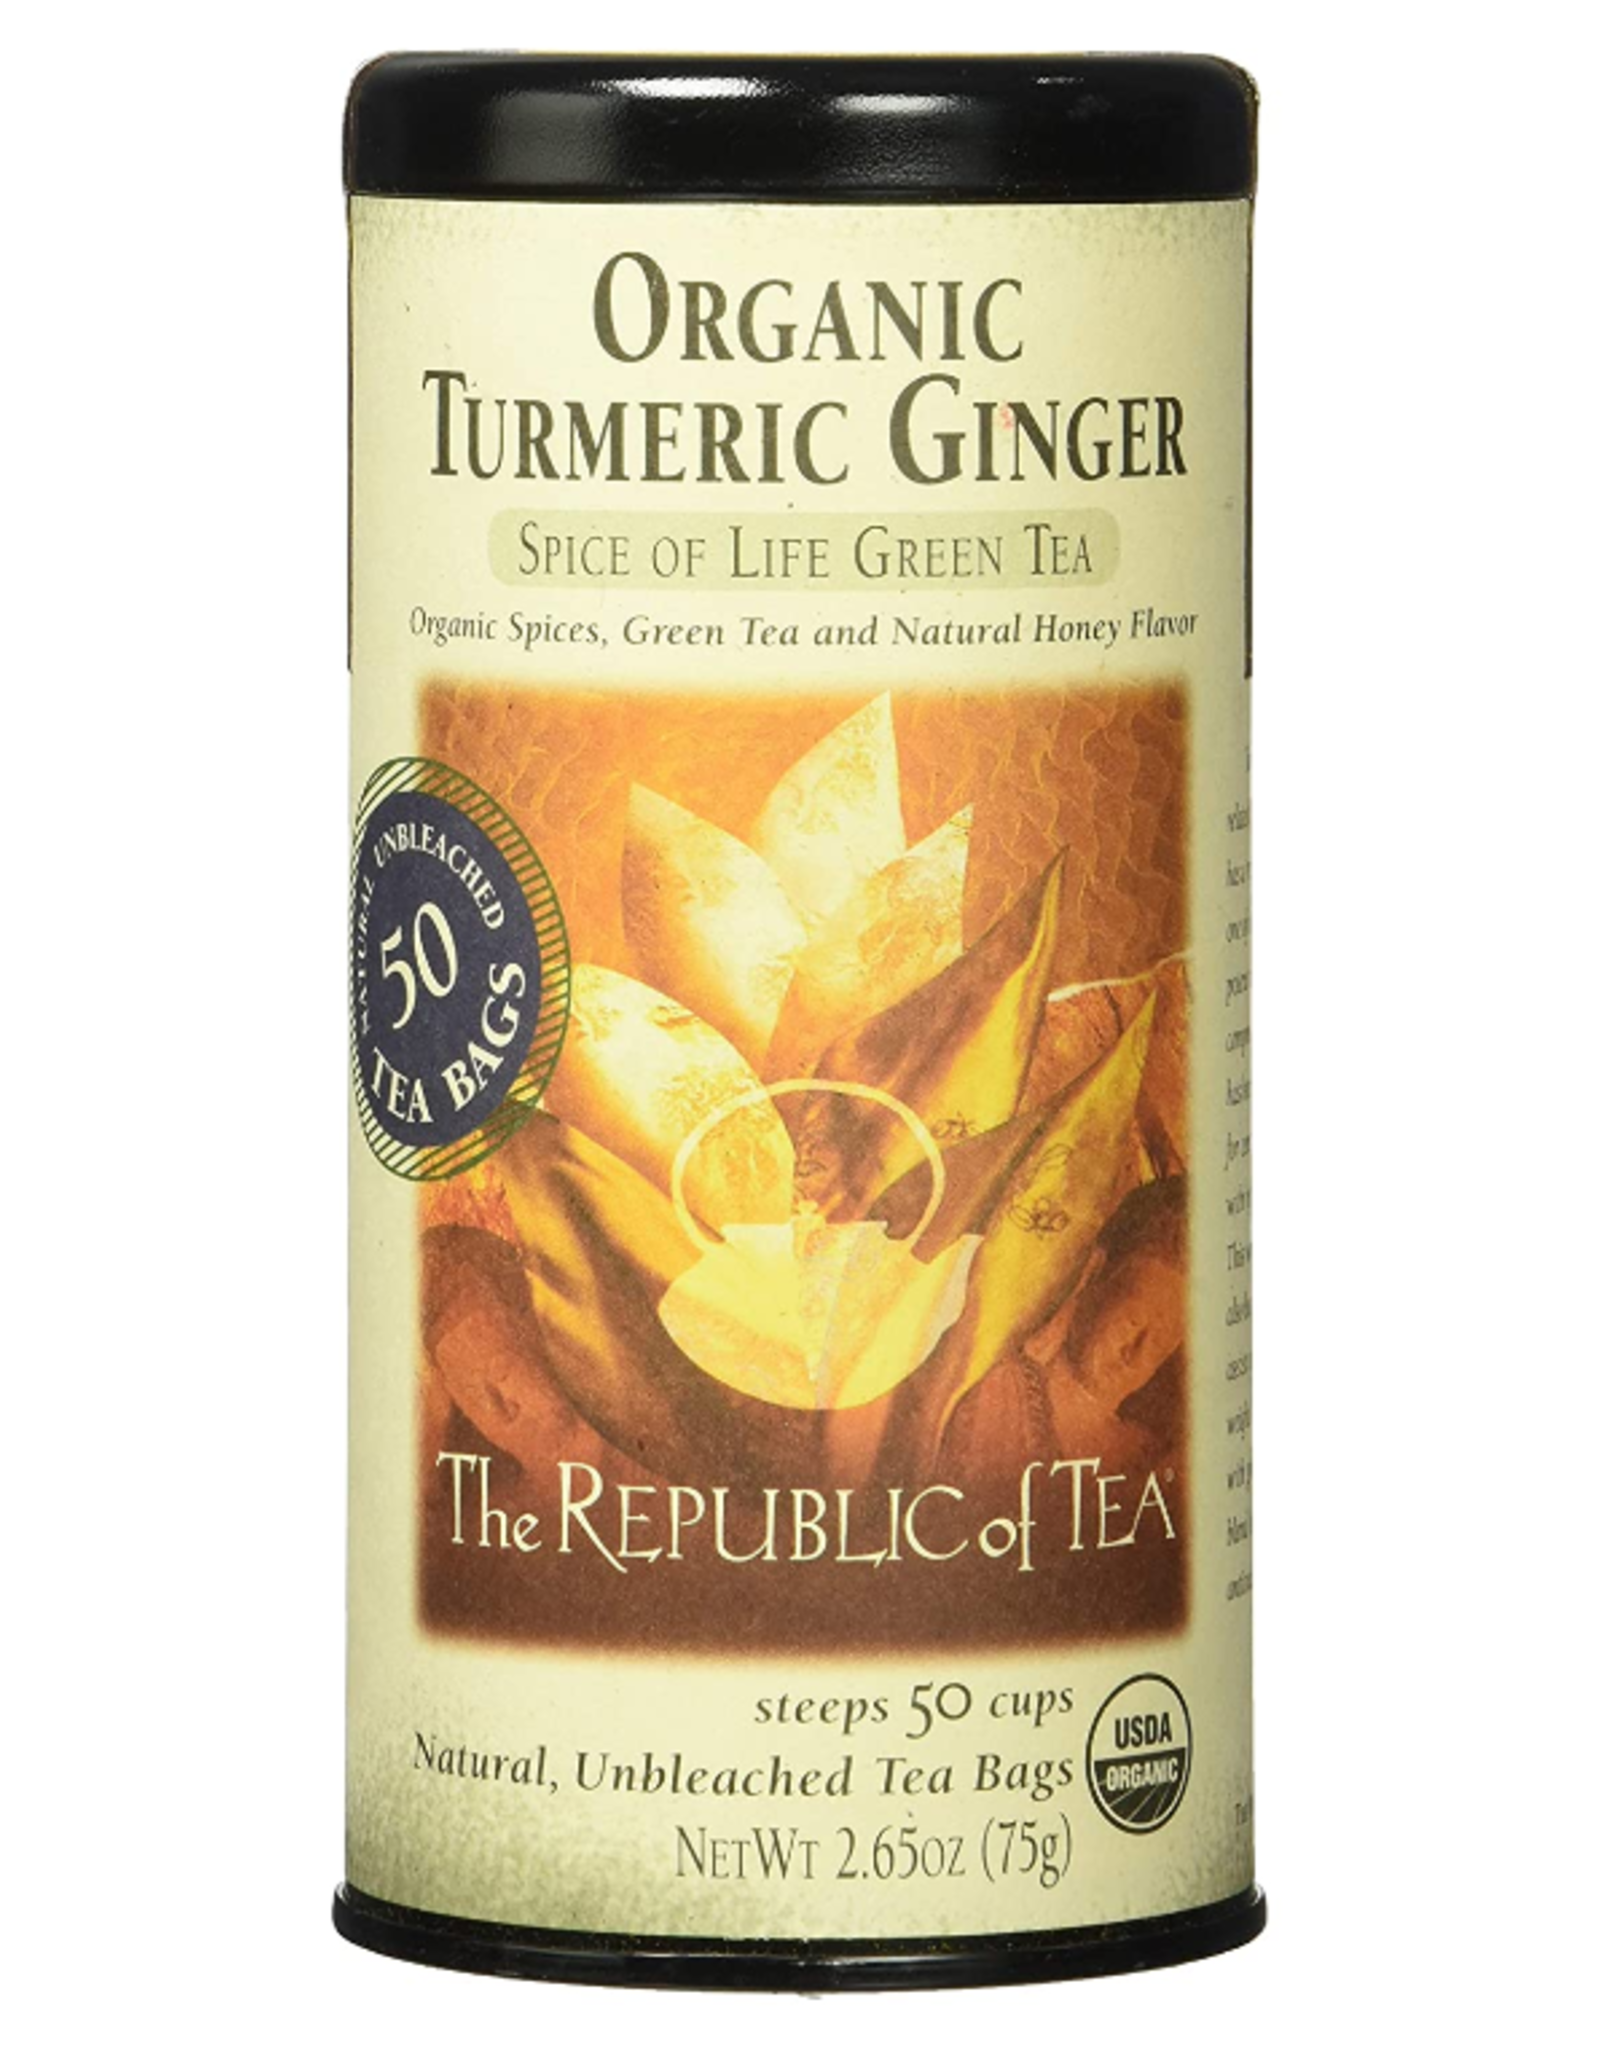 The Republic of Tea Organic Turmeric Ginger Green Tea, 50 Bag Tin